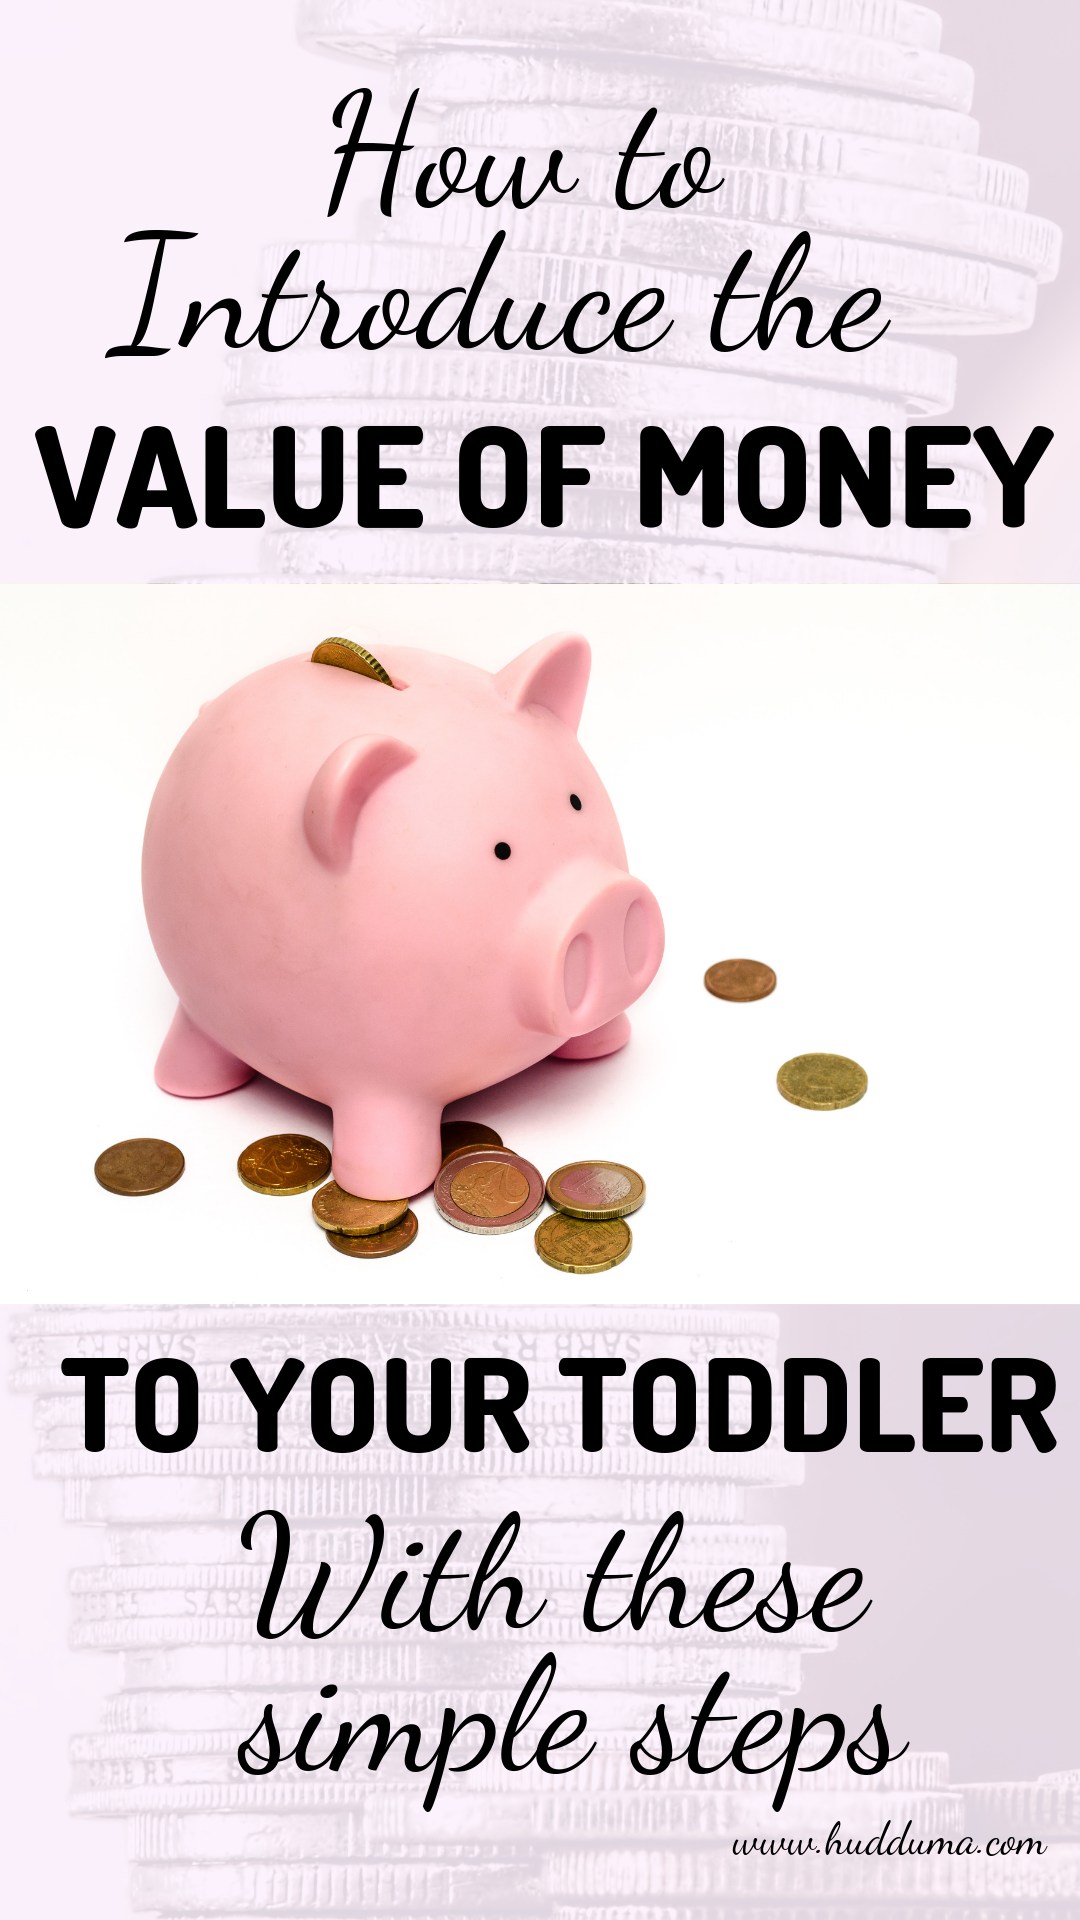 5 Simple Ways To Teach Your Toddler About Money